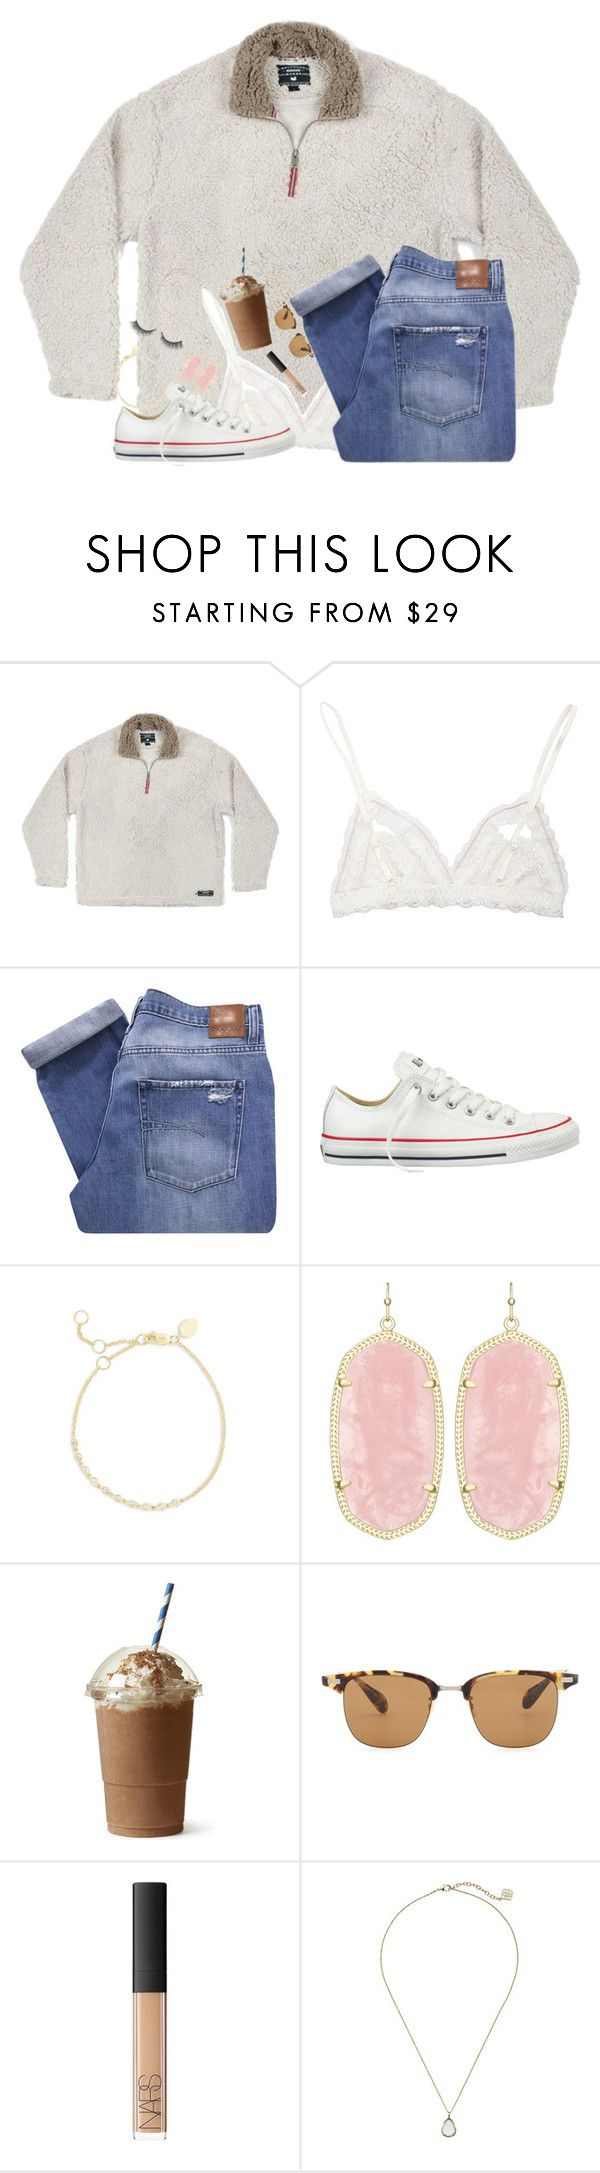 """""""When you think it's fall, but then it turns back to summer..."""" by erinlmarkel ❤ liked on Polyvore featuring Hanky Panky, Nobody Denim, Converse, Meira T, Kendra Scott, Oliver Peoples, NARS Cosmetics and Rimini"""